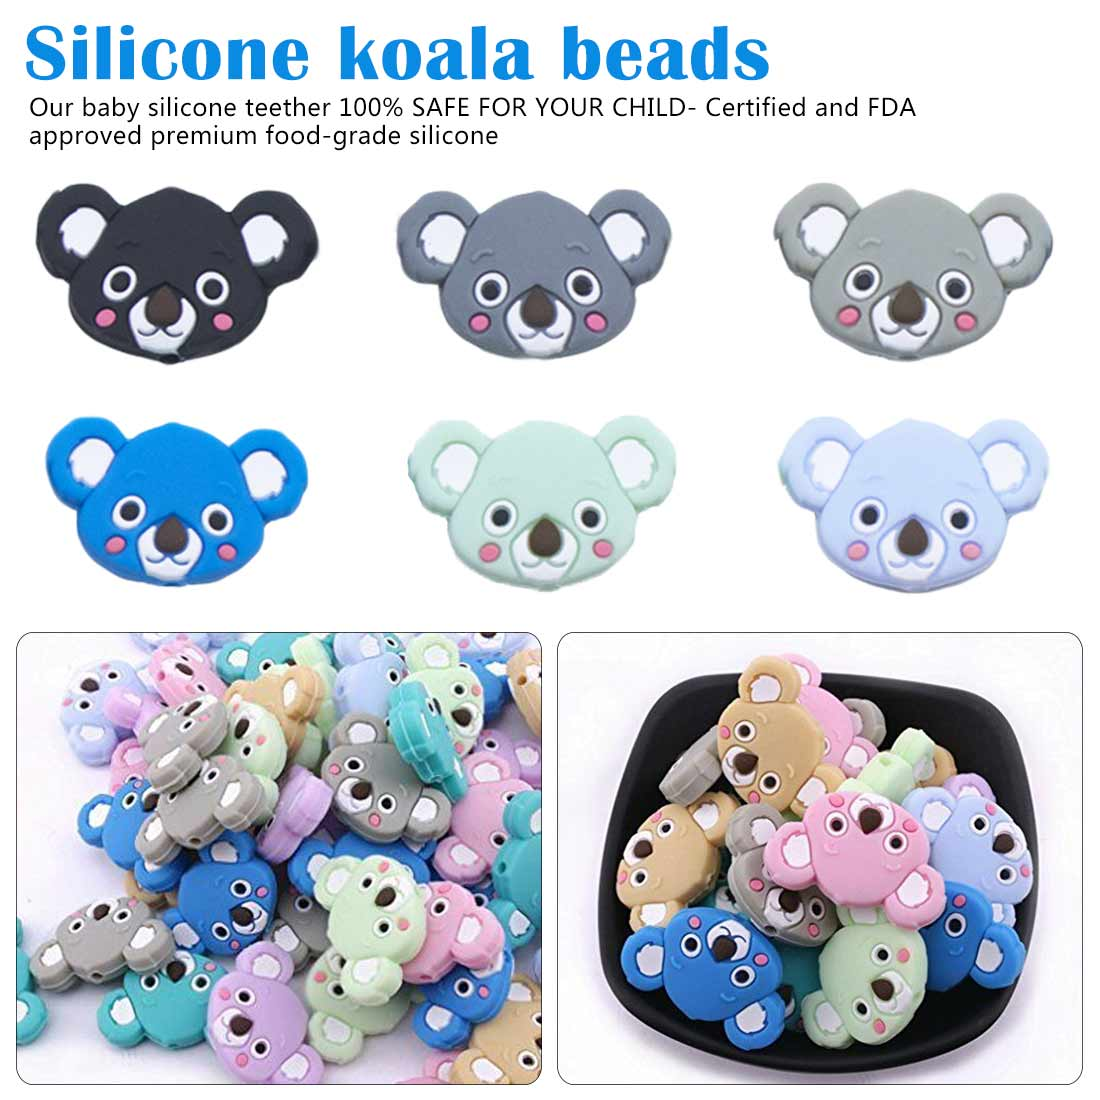 6pcs Silicone Teether Beads DIY Unicorn Star Penguin Flower Koala Flamingo Baby Teething Sensory Jewelry Cartoon Beads